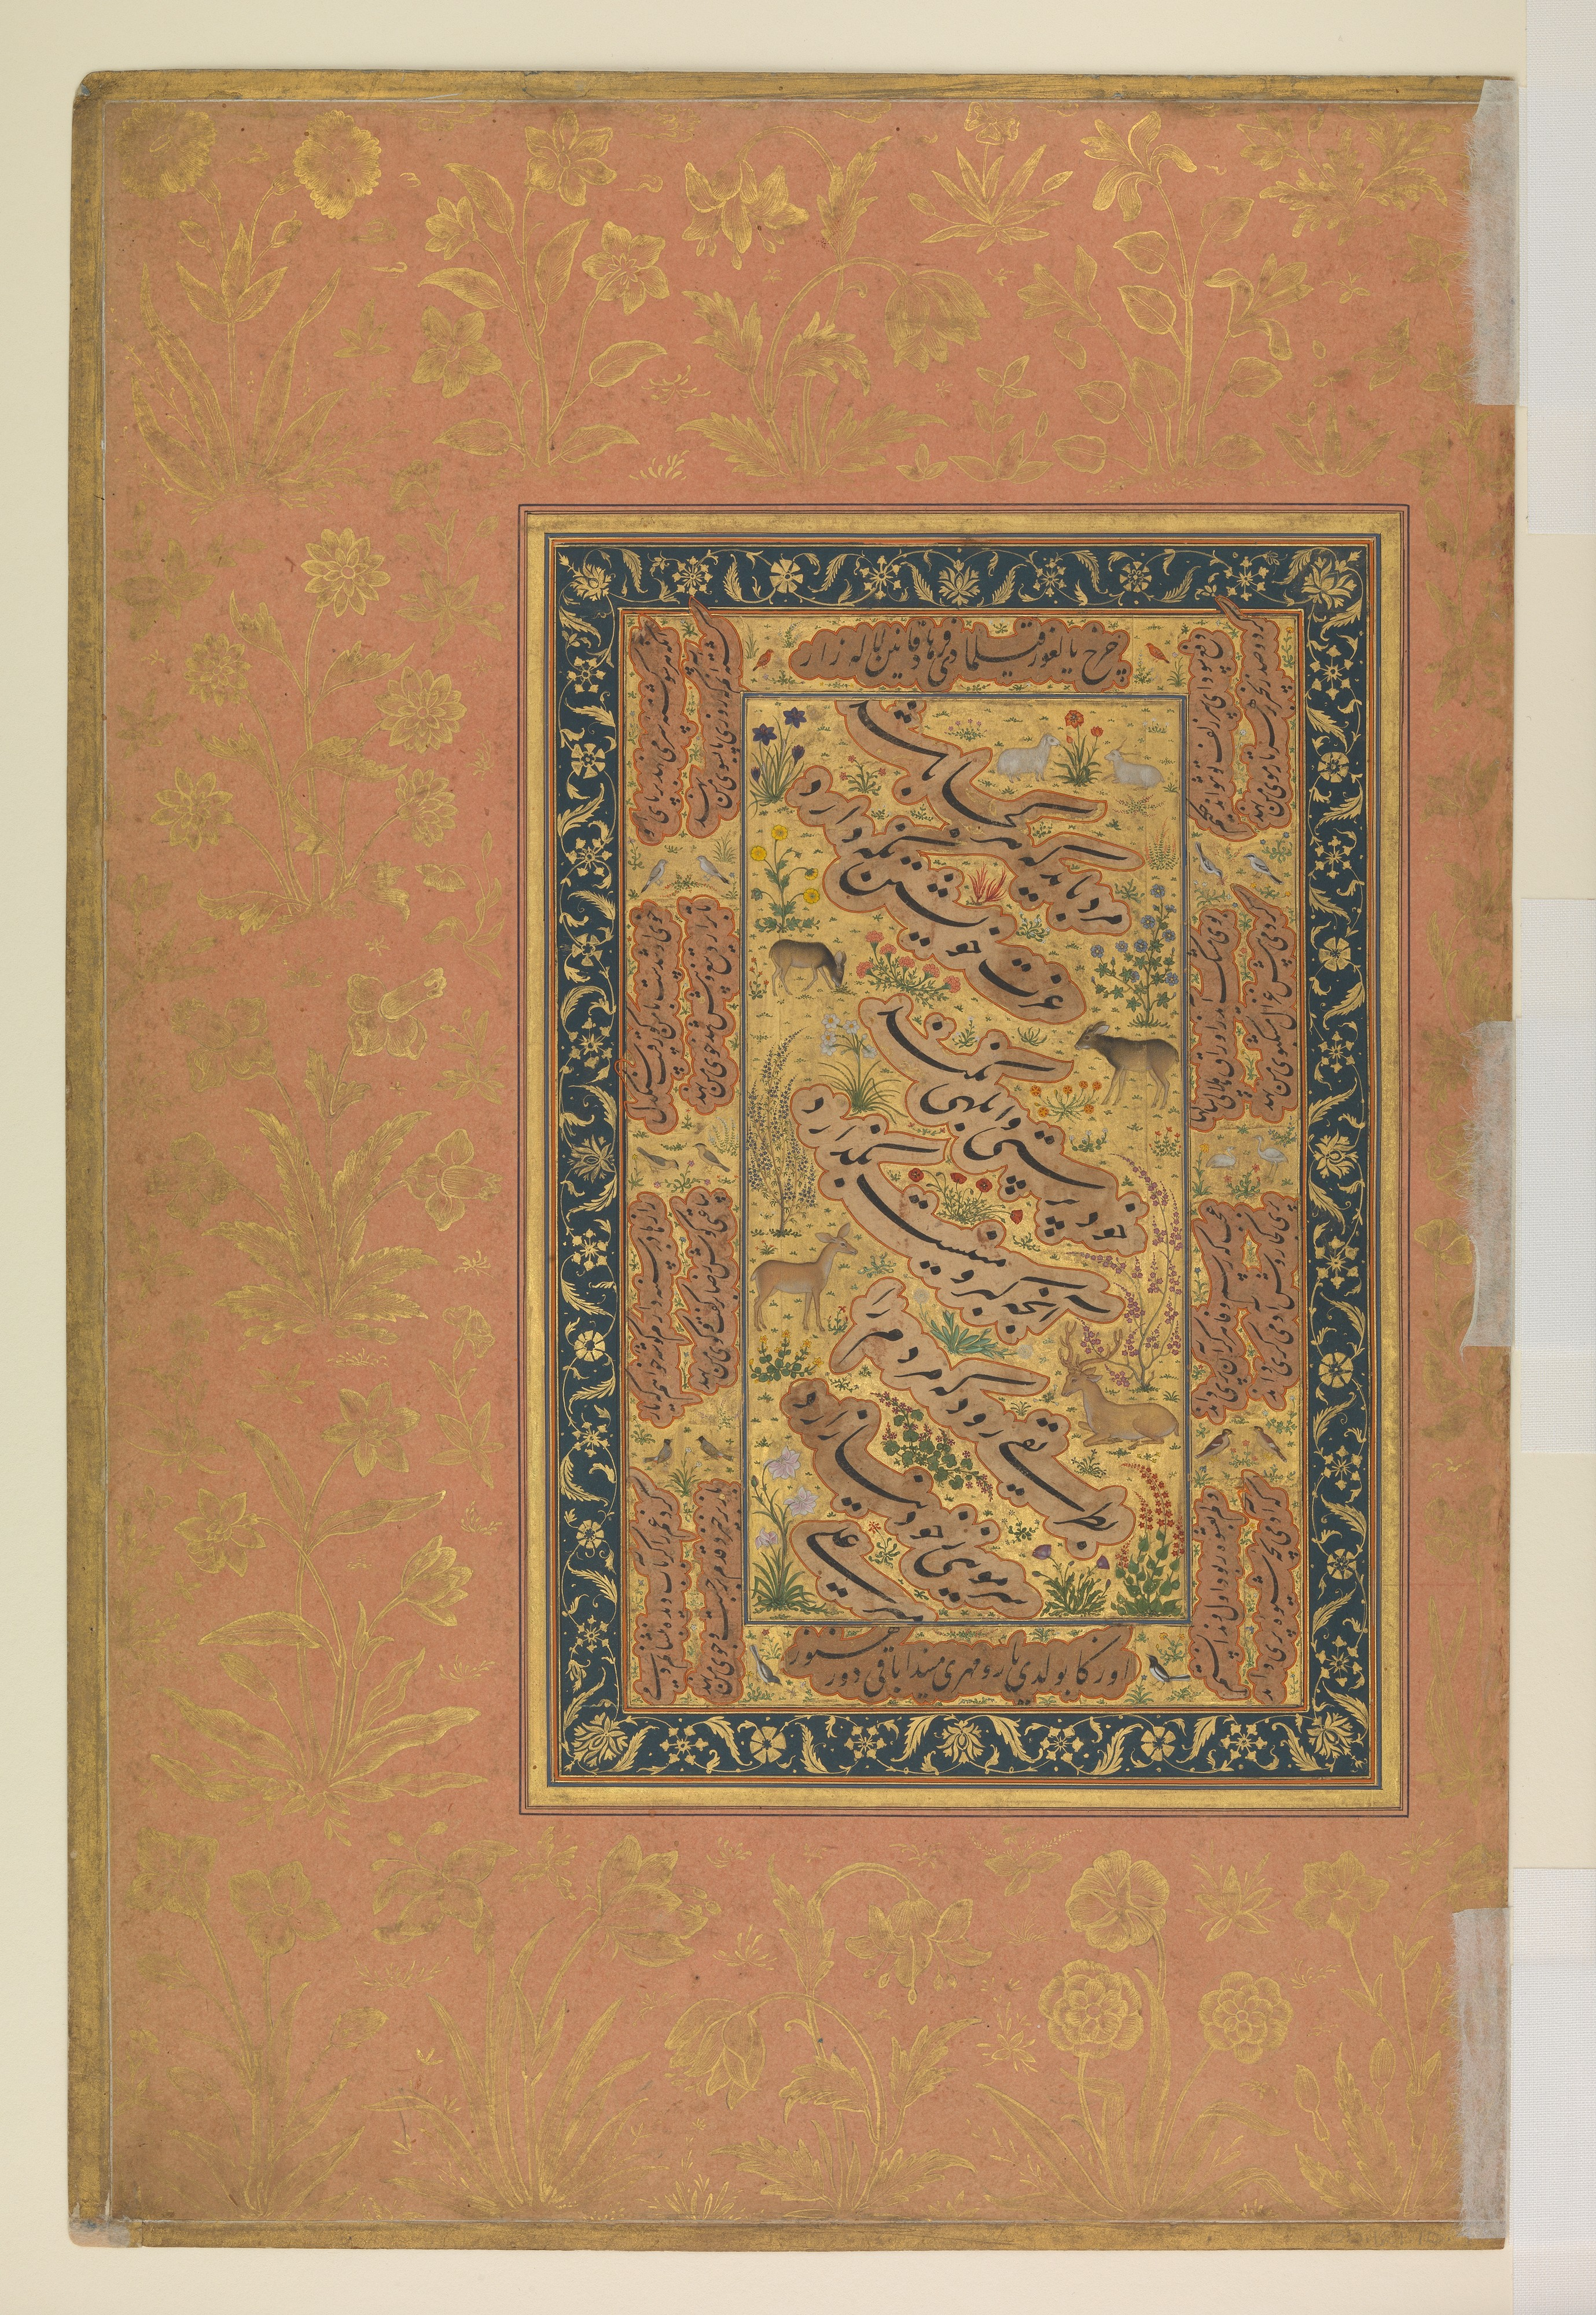 Mir Ali Haravi Page Of Calligraphy Illuminated With Animals And Plants In A Field Of Flowers Folio From The Shah Jahan Album The Metropolitan Museum Of Art